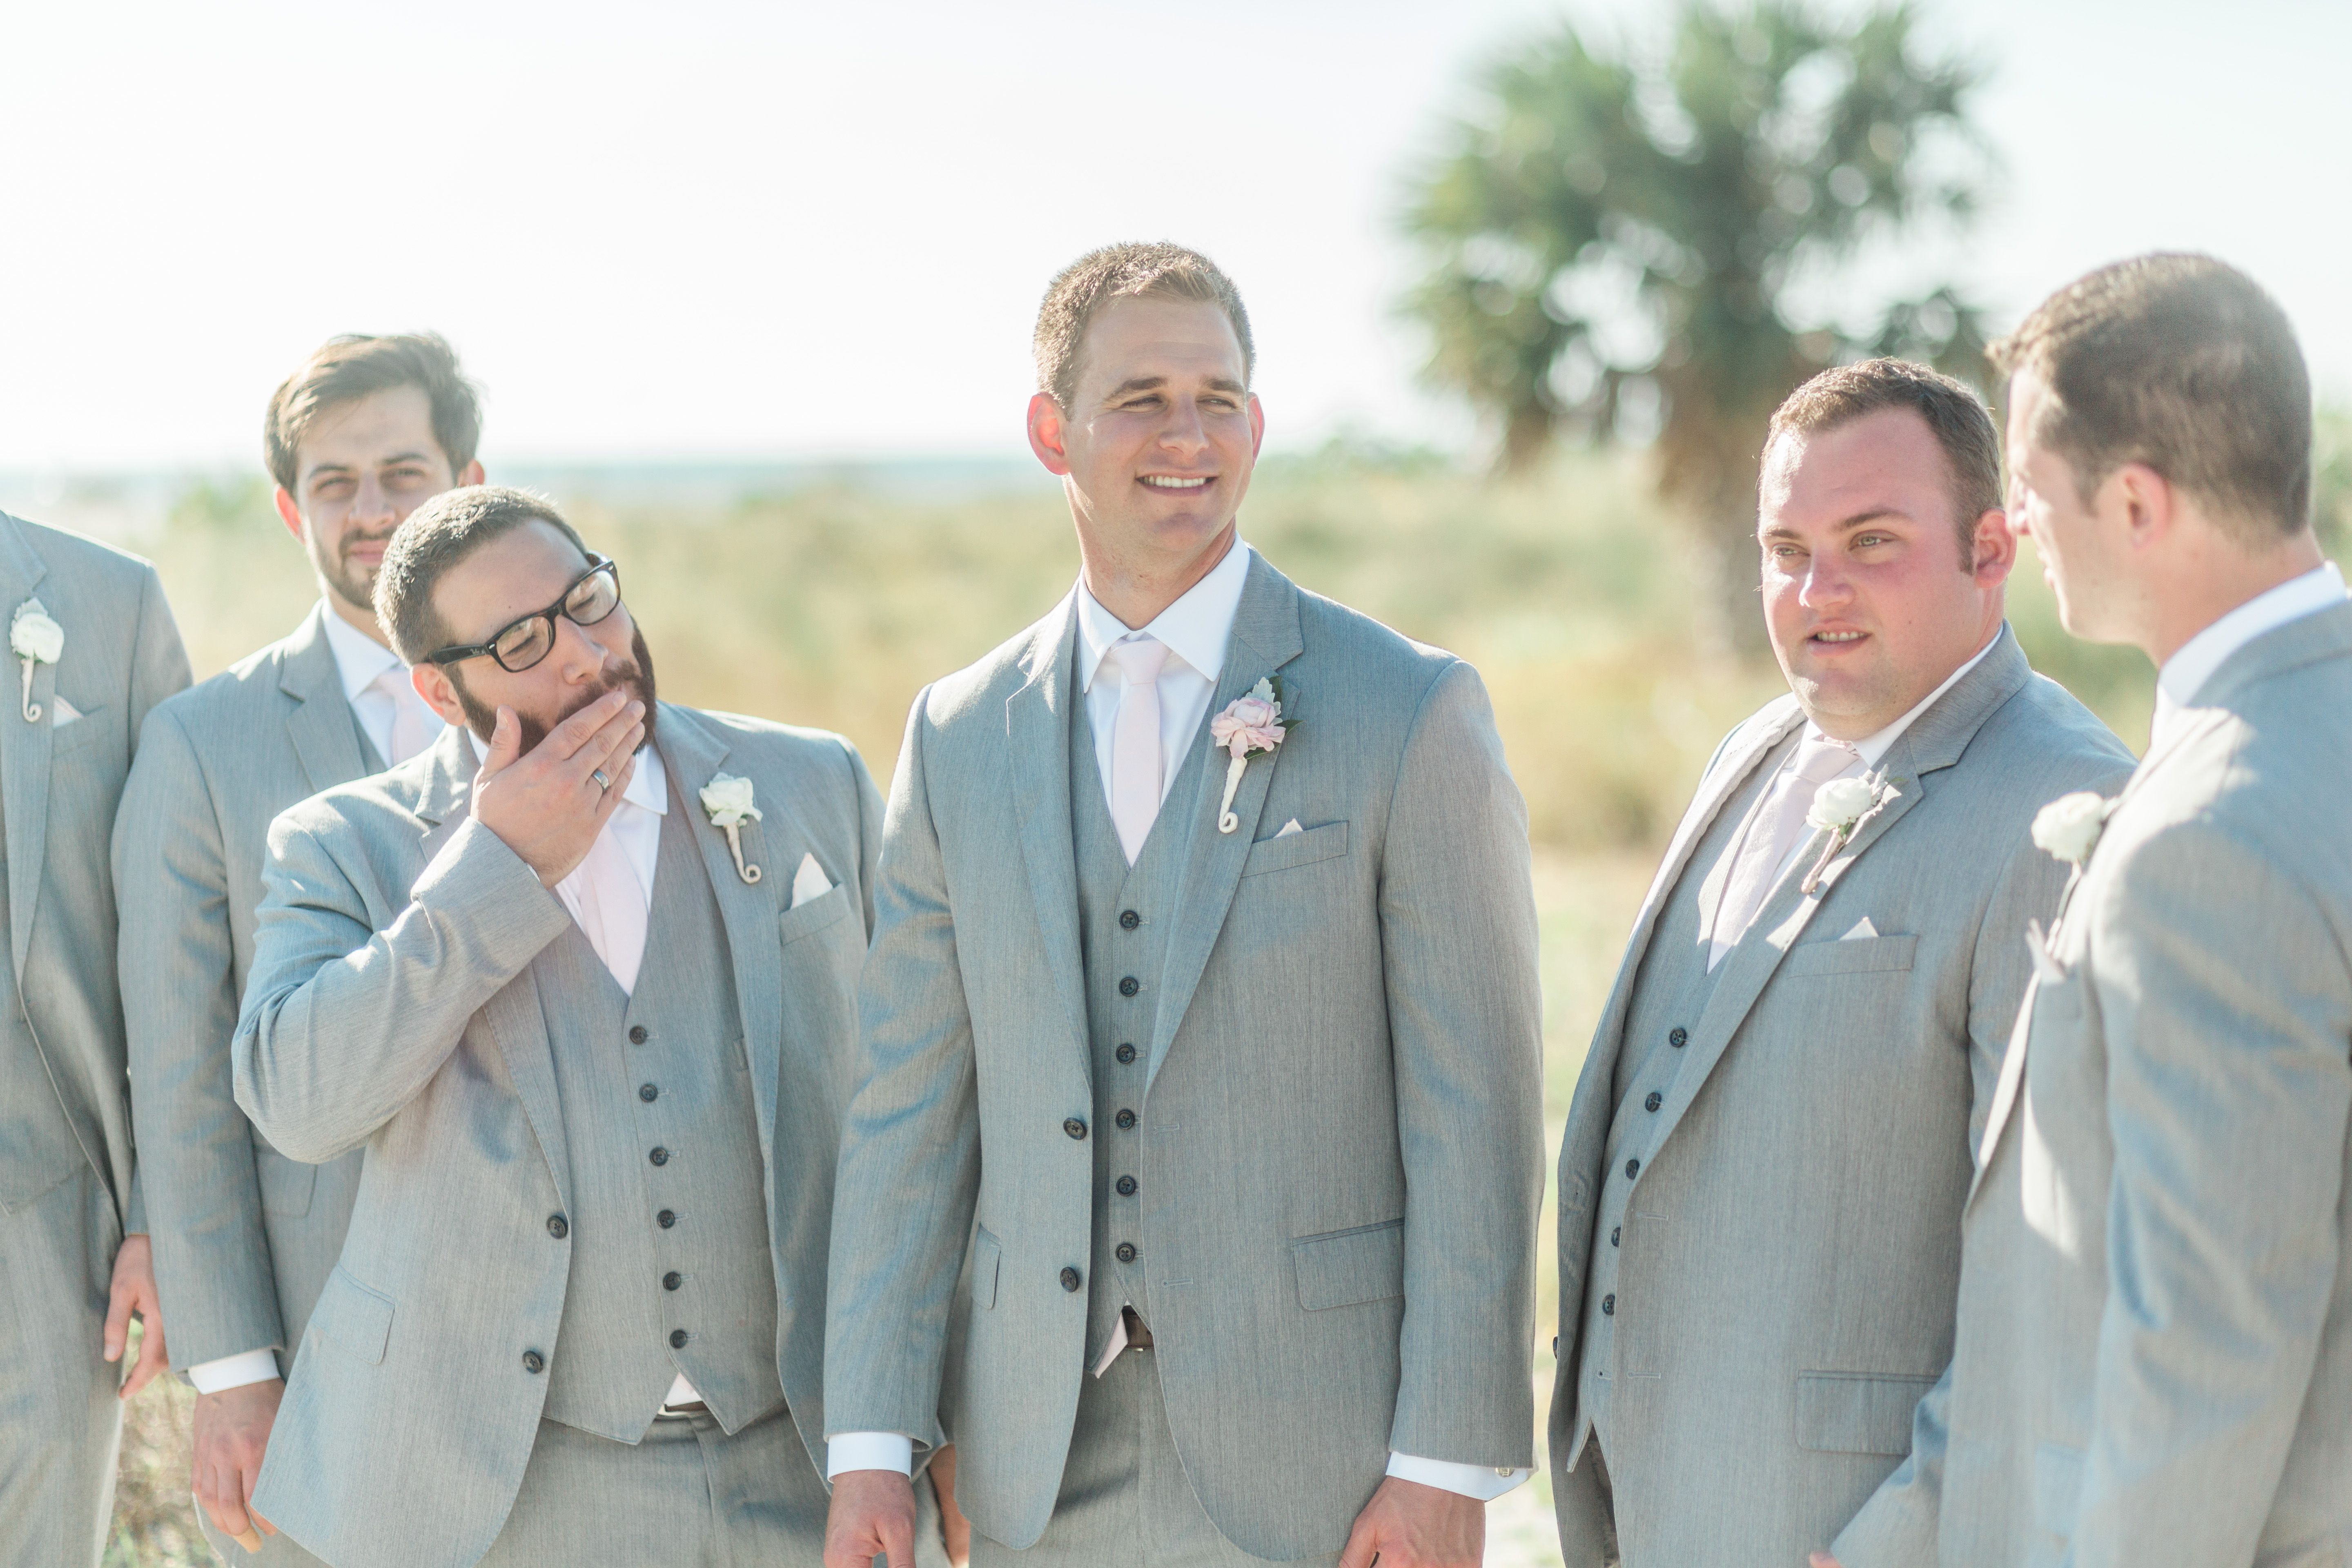 Light Grey Groomsmen Suit With Blush Pink Ties... Perfect Look for ...